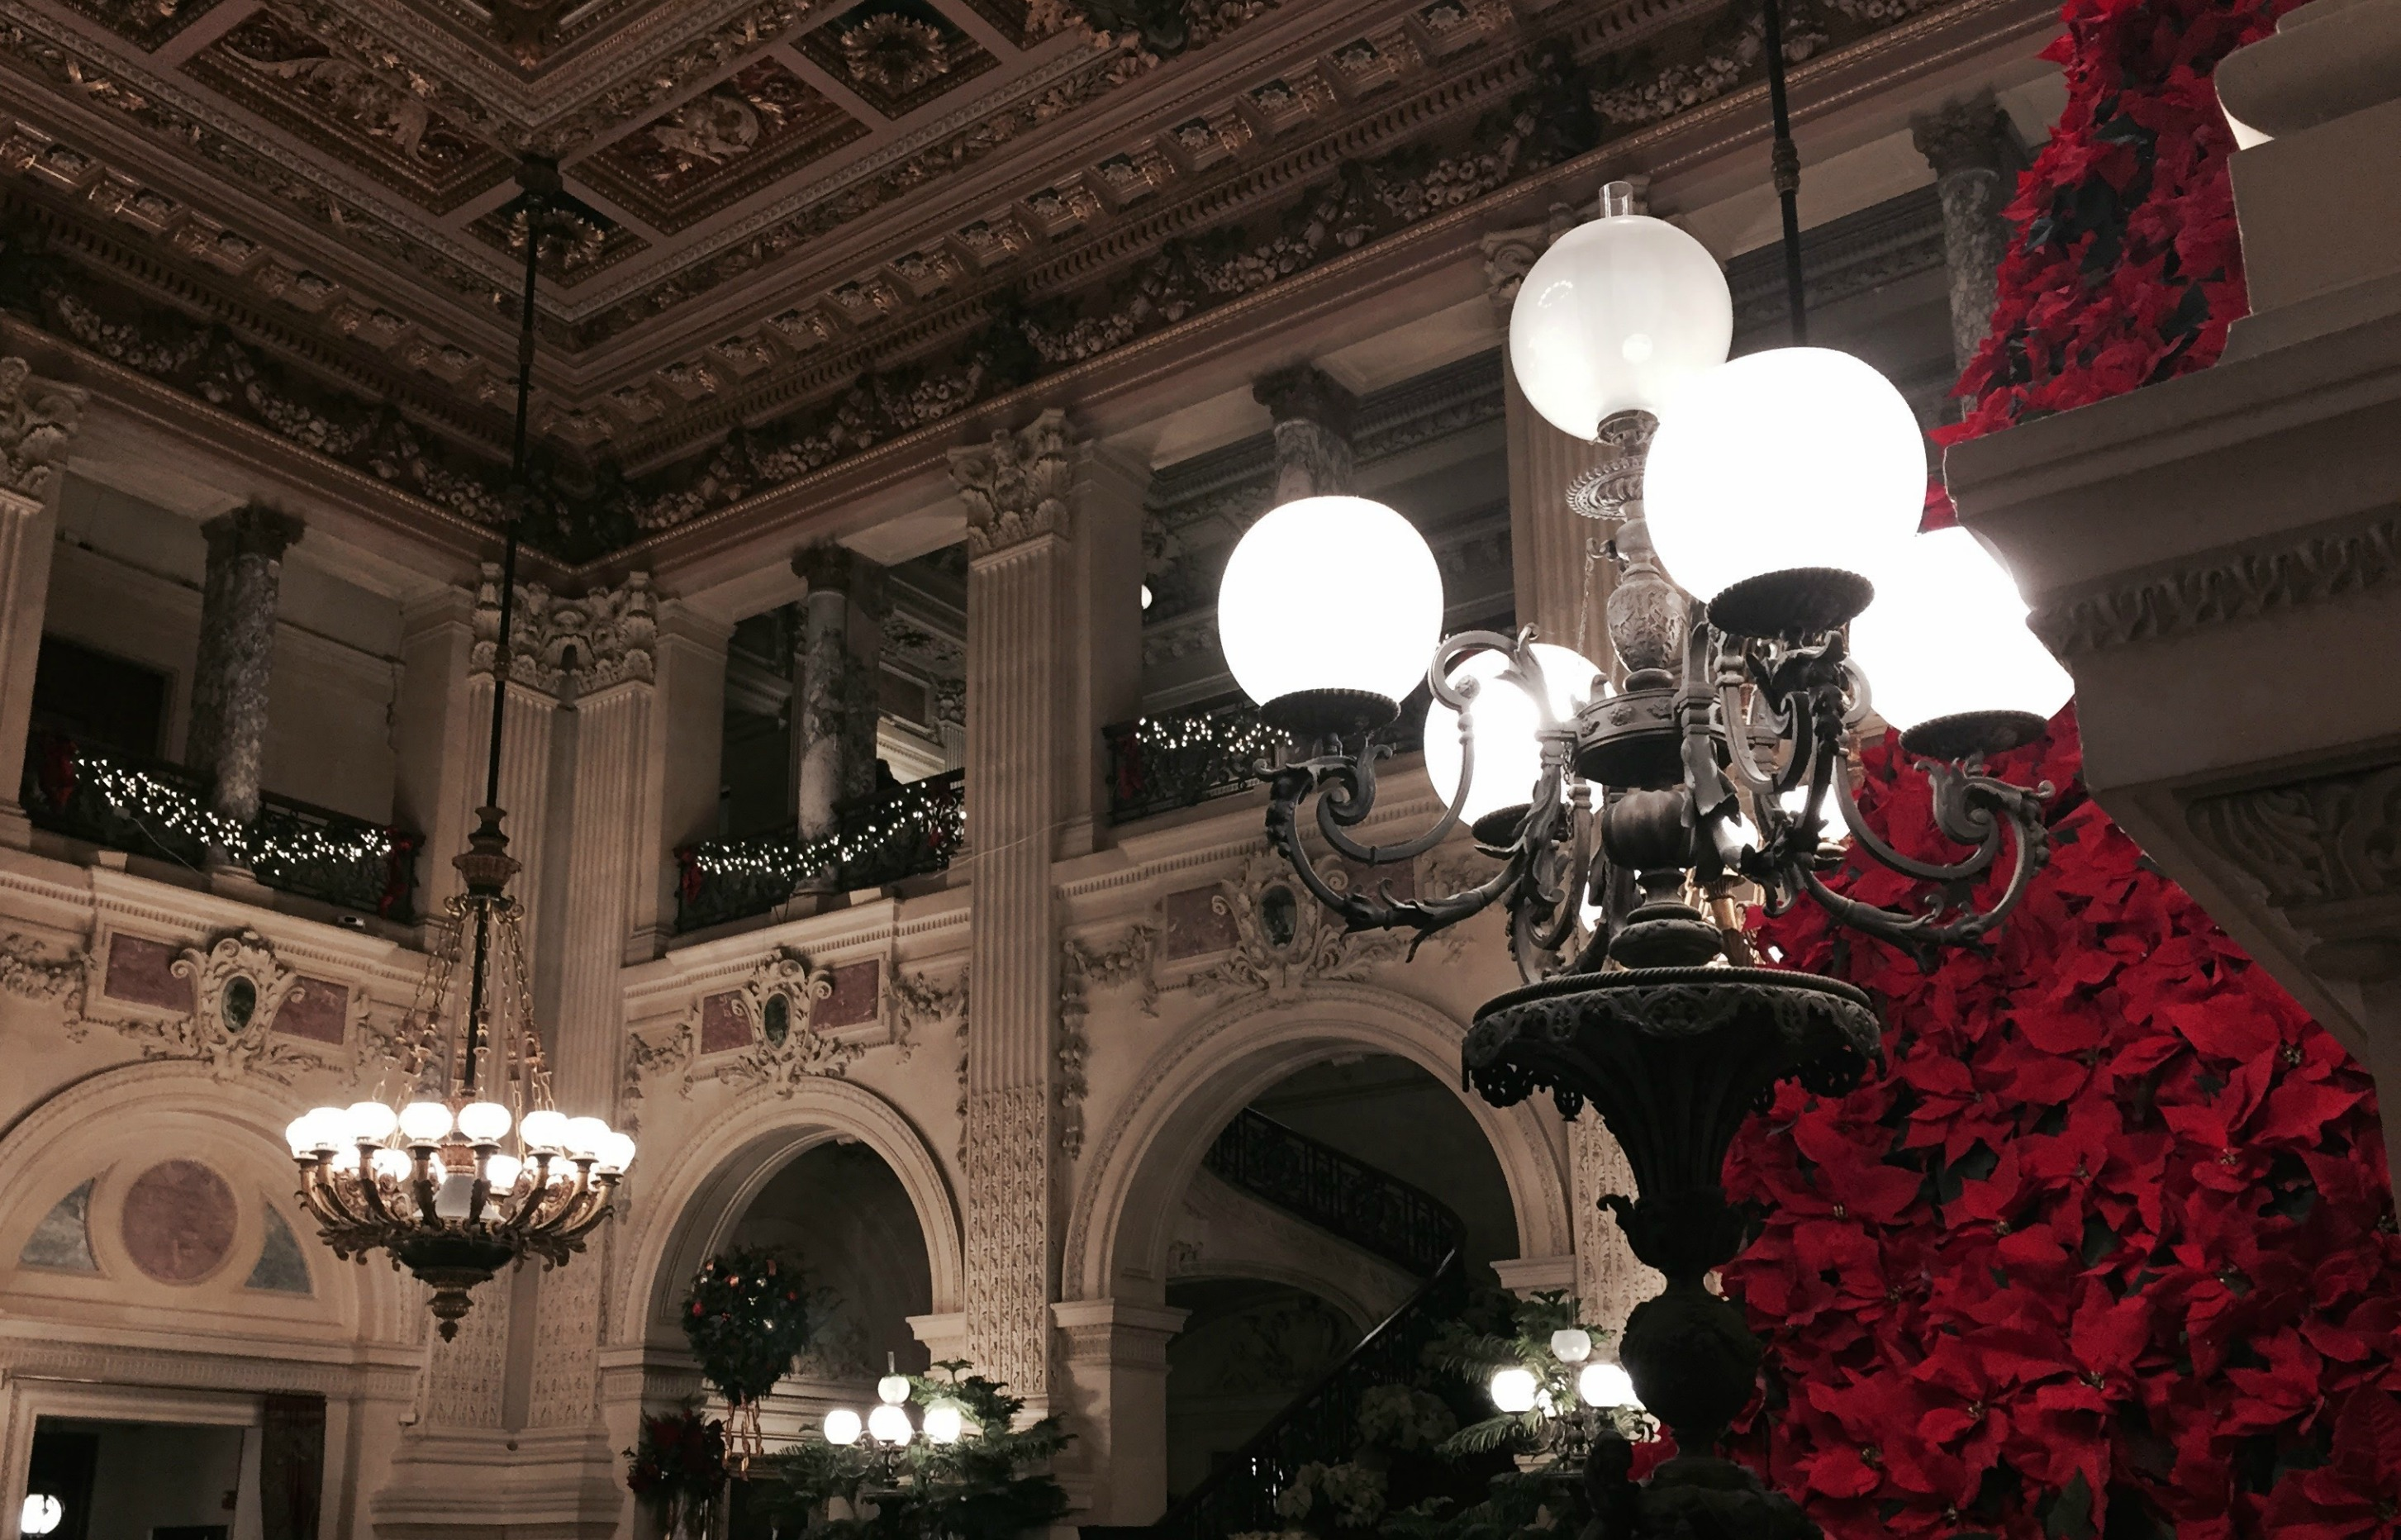 The Breakers Mansion in Newport, RI all dressed up for Christmas.